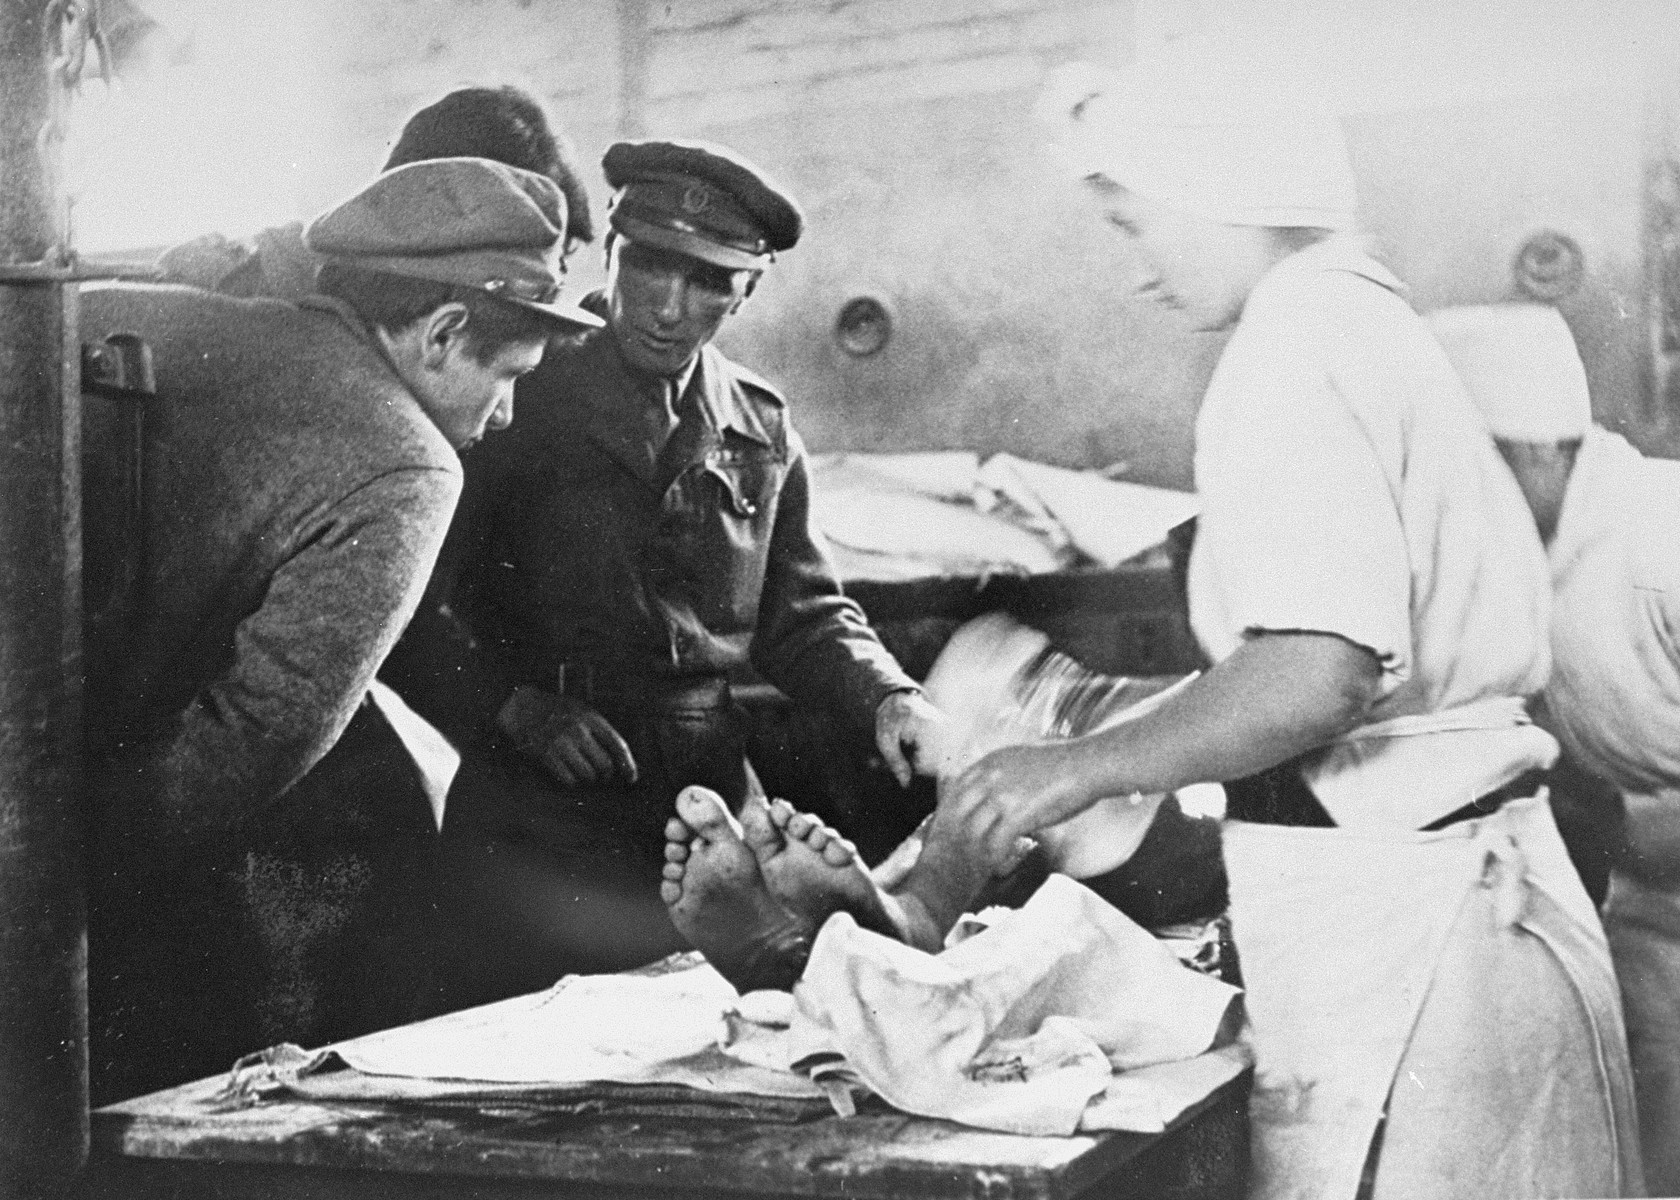 British physicians examines a Typhus patient who is being bathed by nurses.